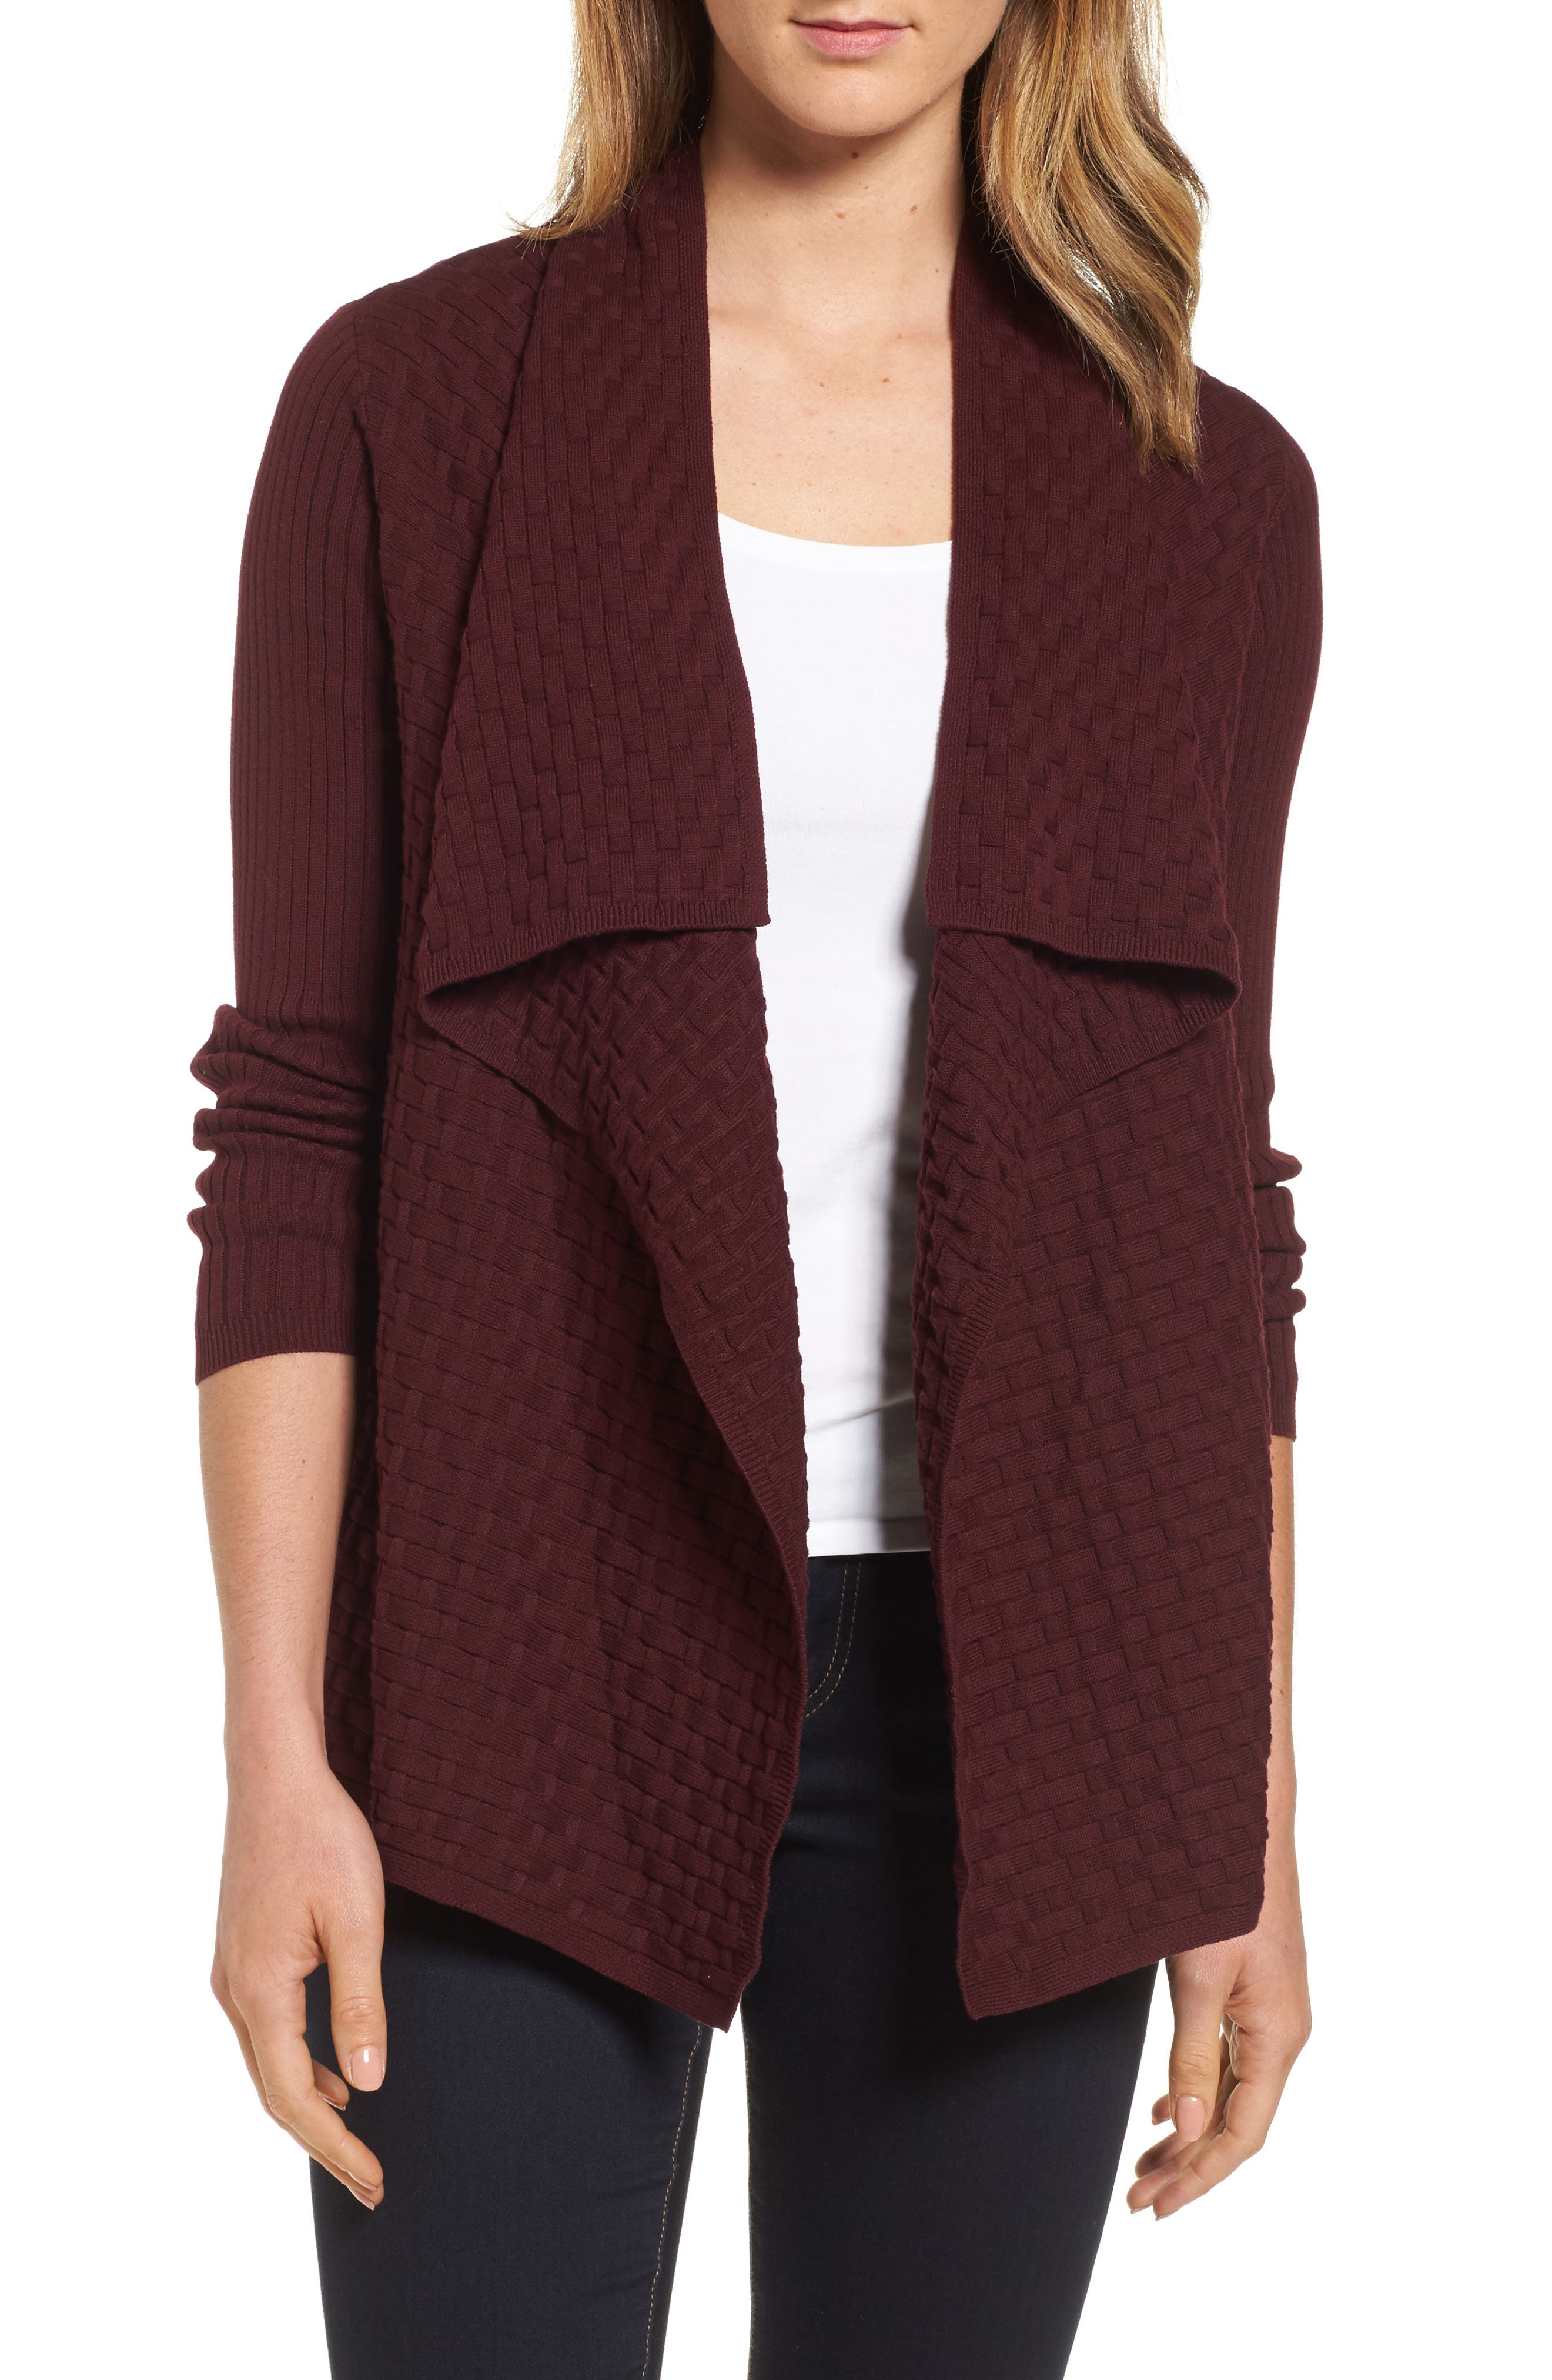 Chaus Mixed Cotton Knit Cardigan